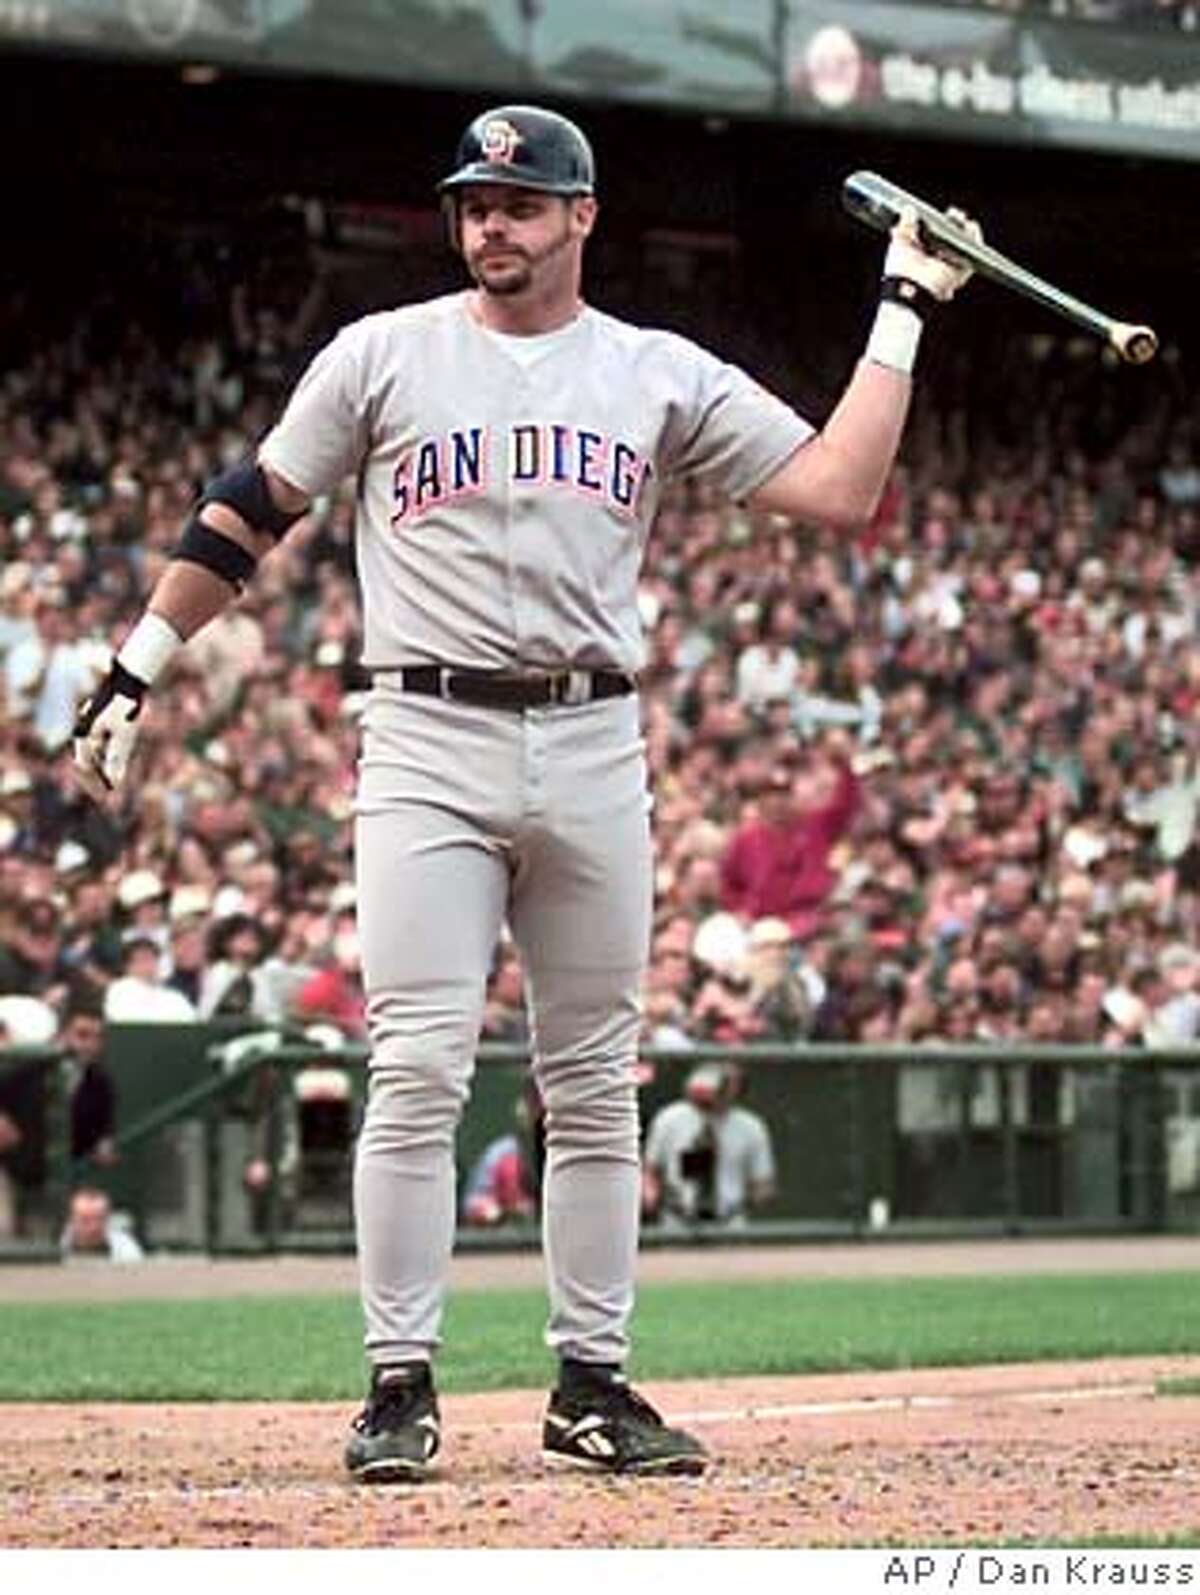 San Diego Padres' Ryan Klesko throws his bat in disgust after striking out in the eighth inning against the San Francisco Giants at Pac Bell Park in San Francisco on Thursday, July 20, 2000. The Giants won 7-3. (AP Photo/Dan Krauss) DIGITAL IMAGE